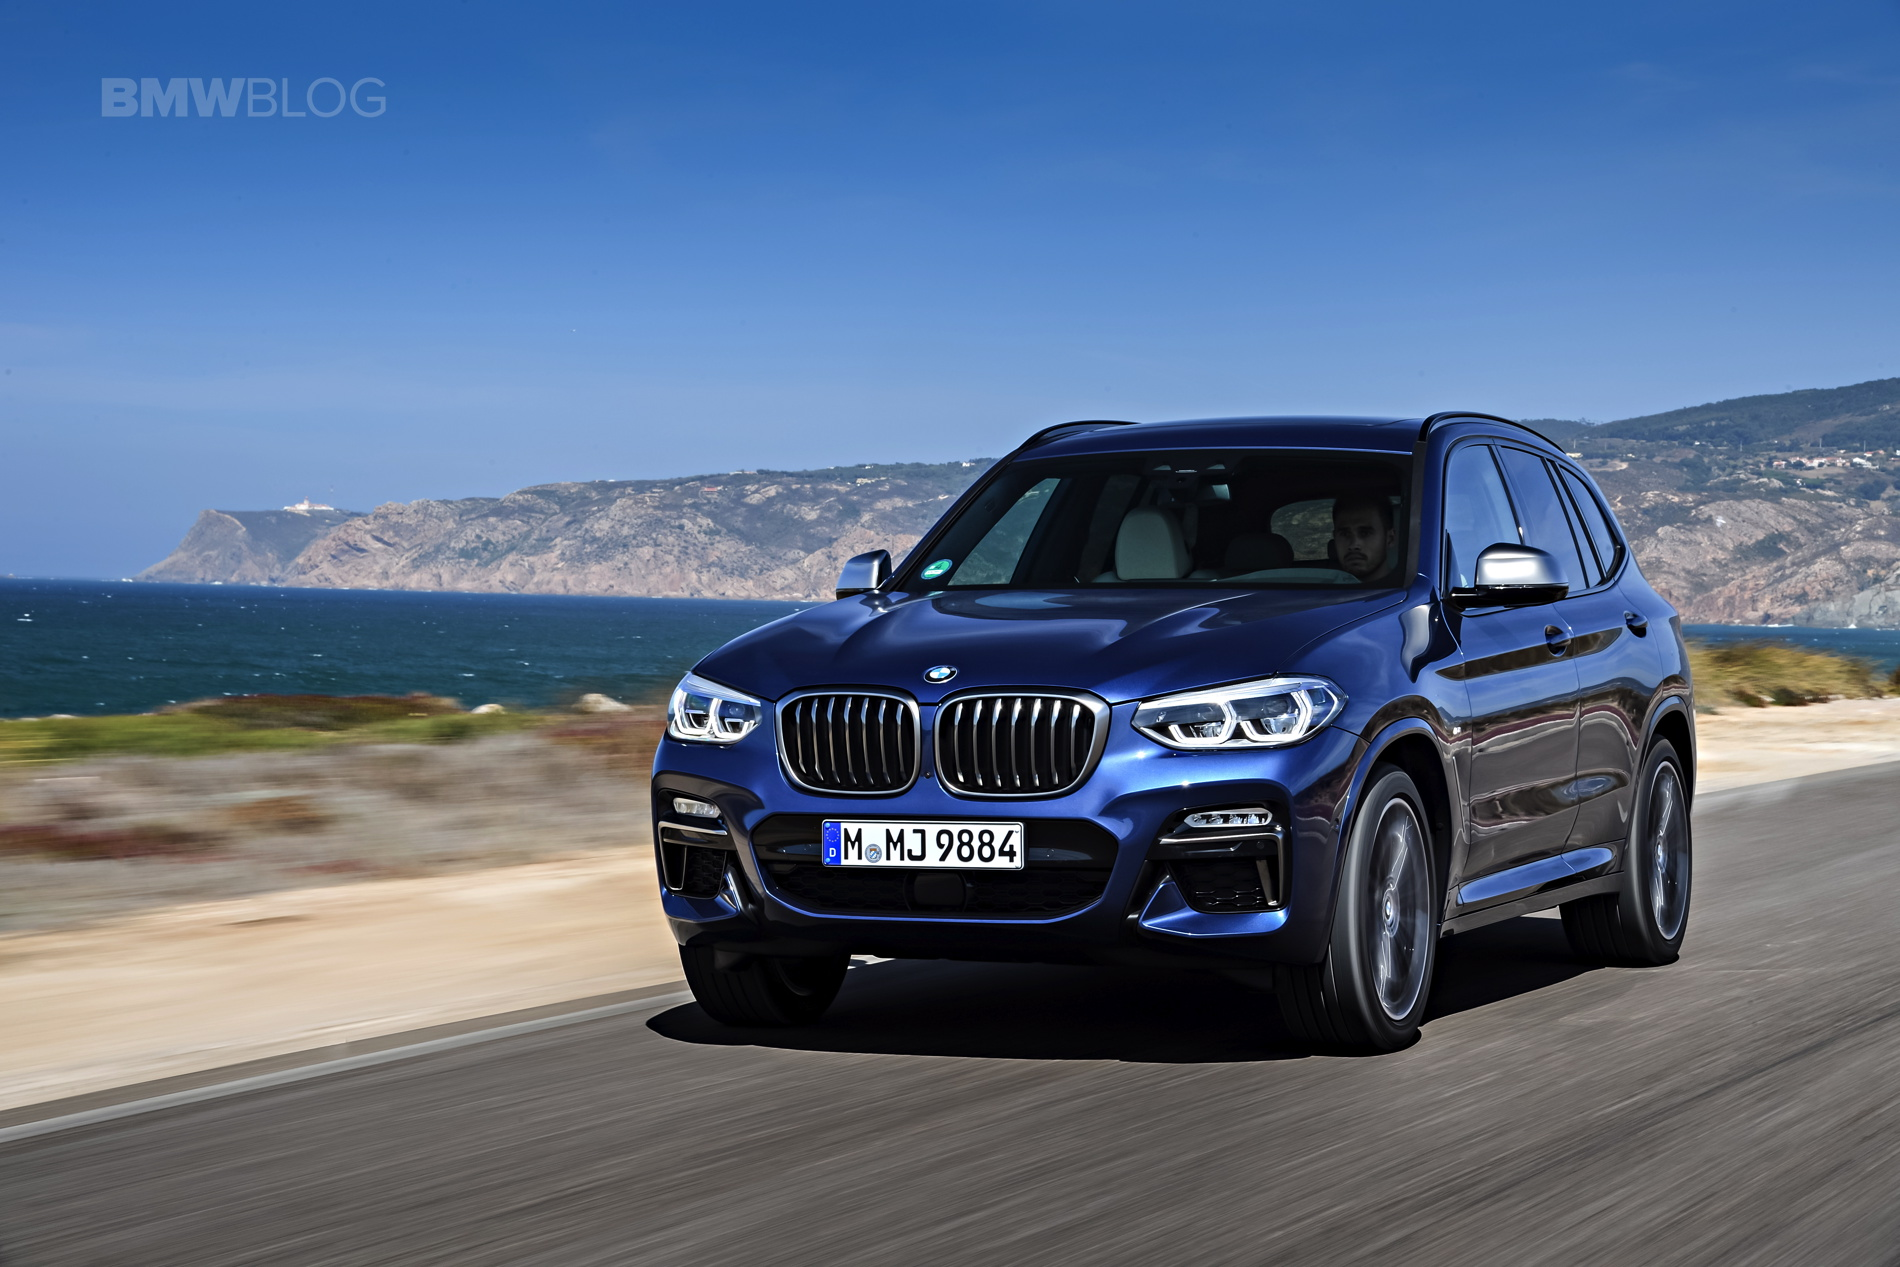 2018 BMW X3 M40i photoshoot 87